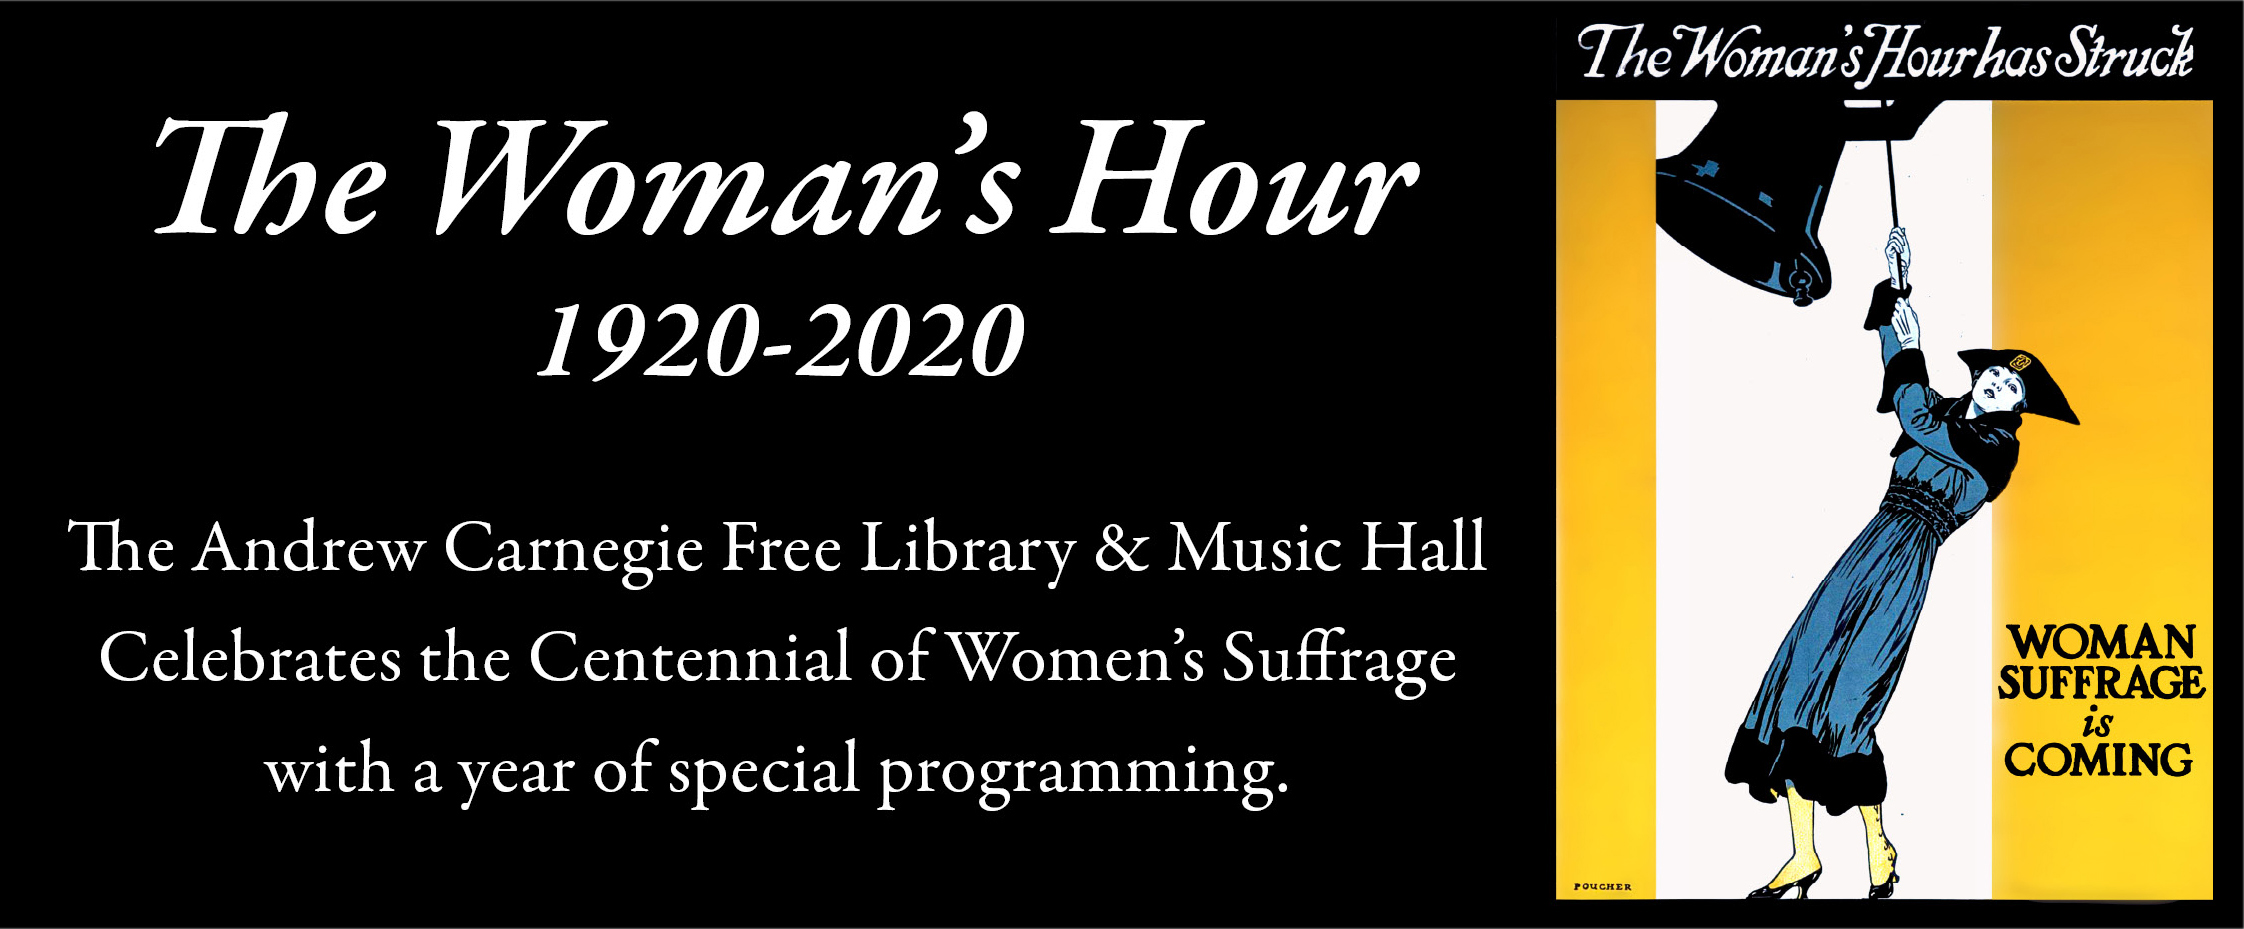 andrew carnegie free library  music hall events